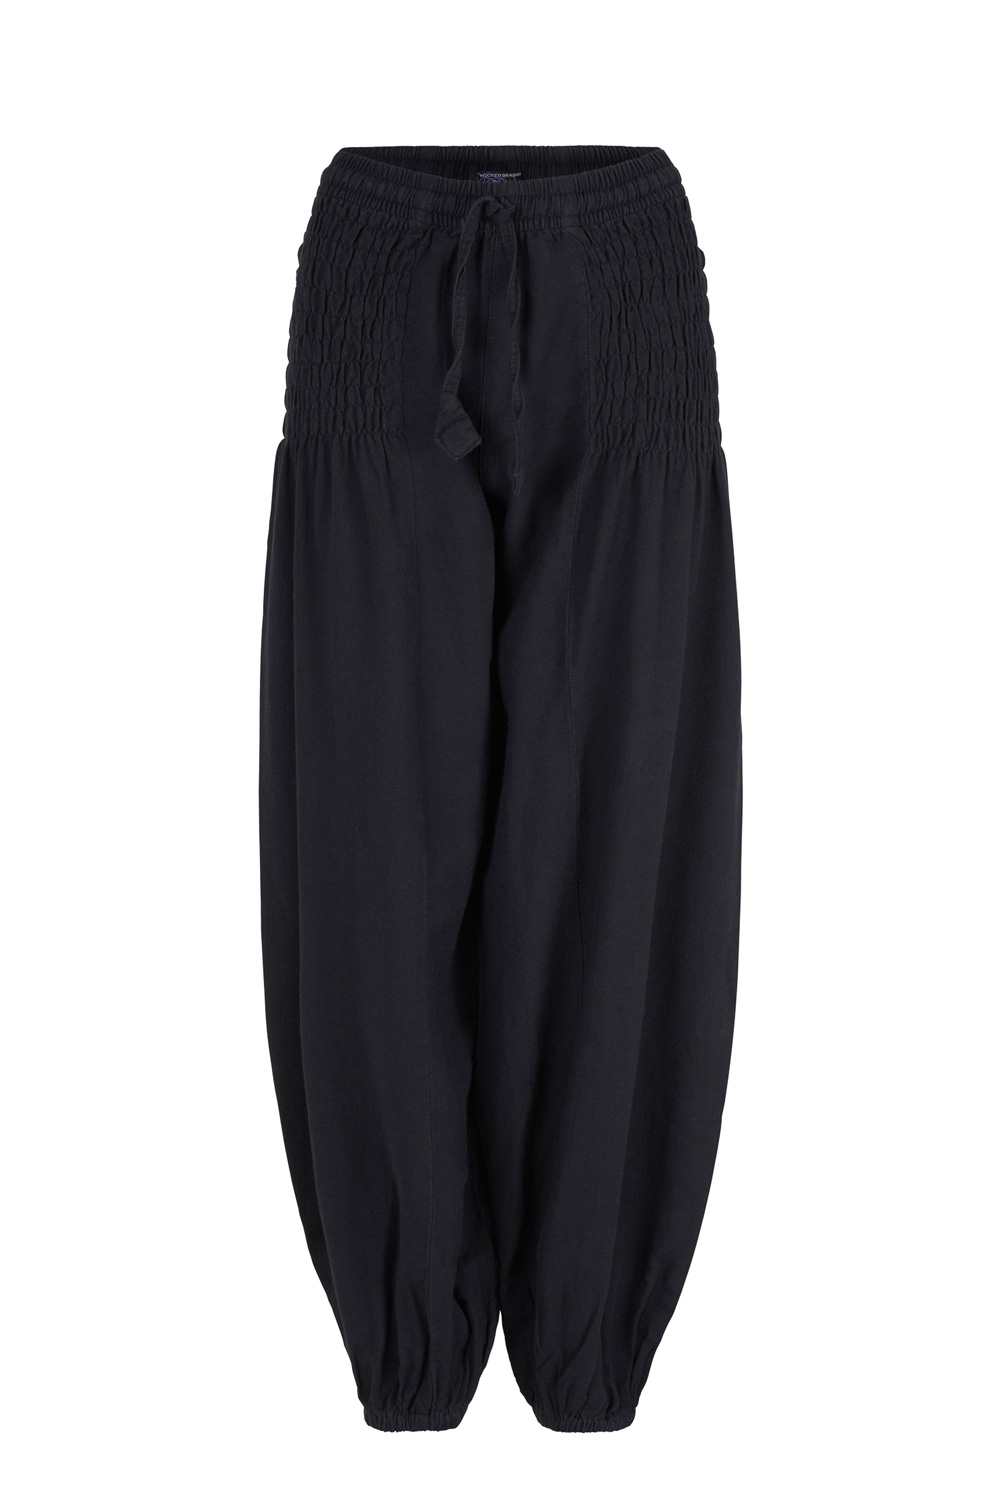 Unisex wide leg long trousers